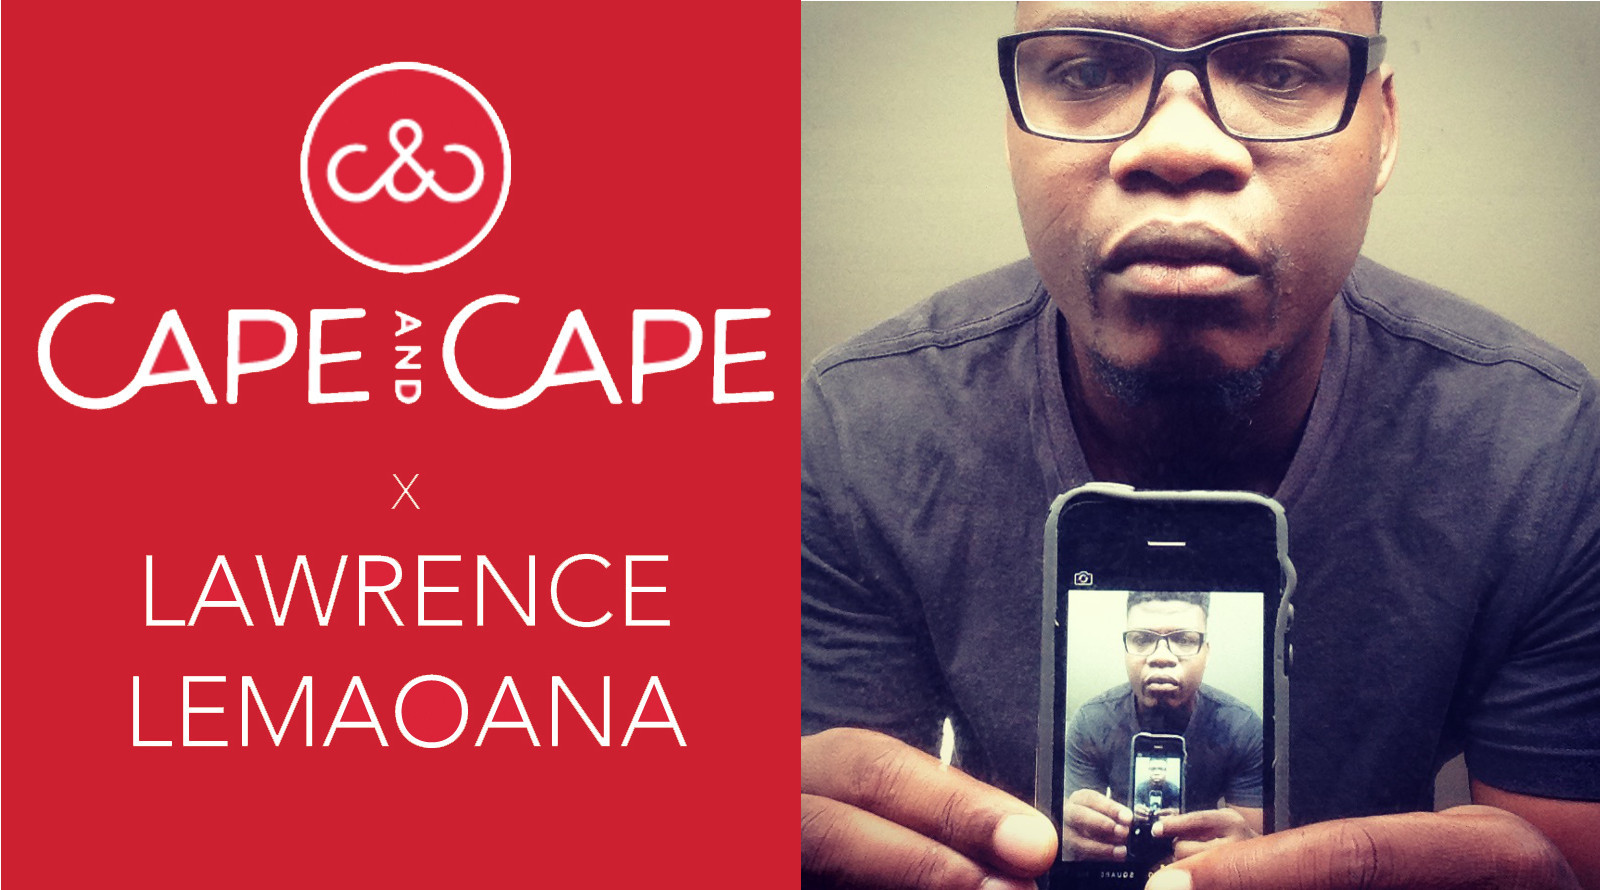 Lawrence Lemaoana x Cape and Cape